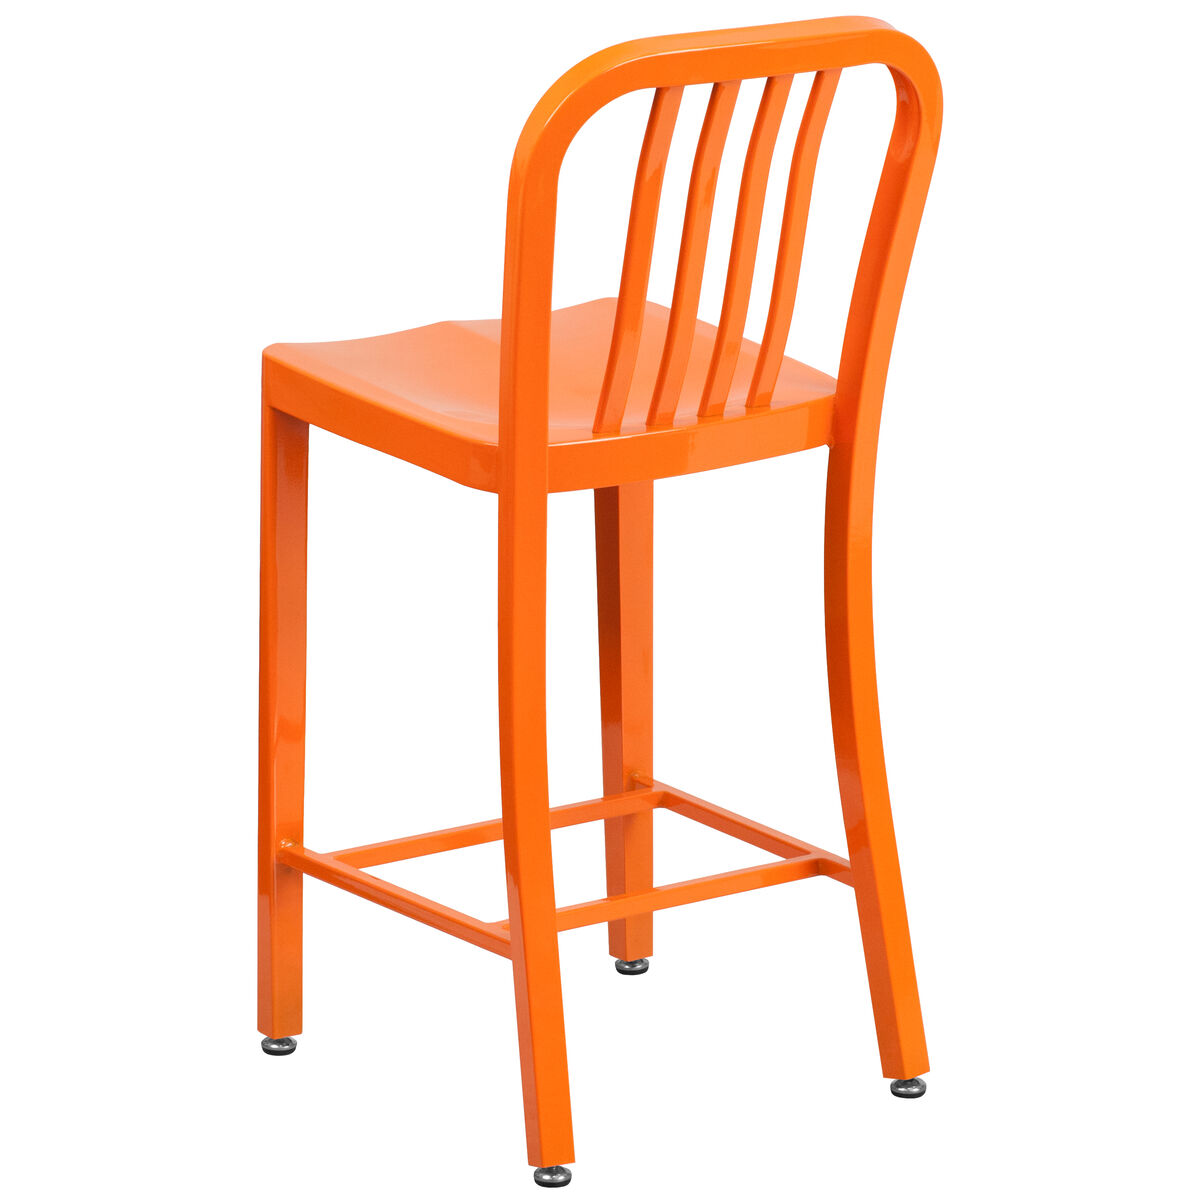 24 Quot Orange Metal Outdoor Stool Ch 61200 24 Or Gg